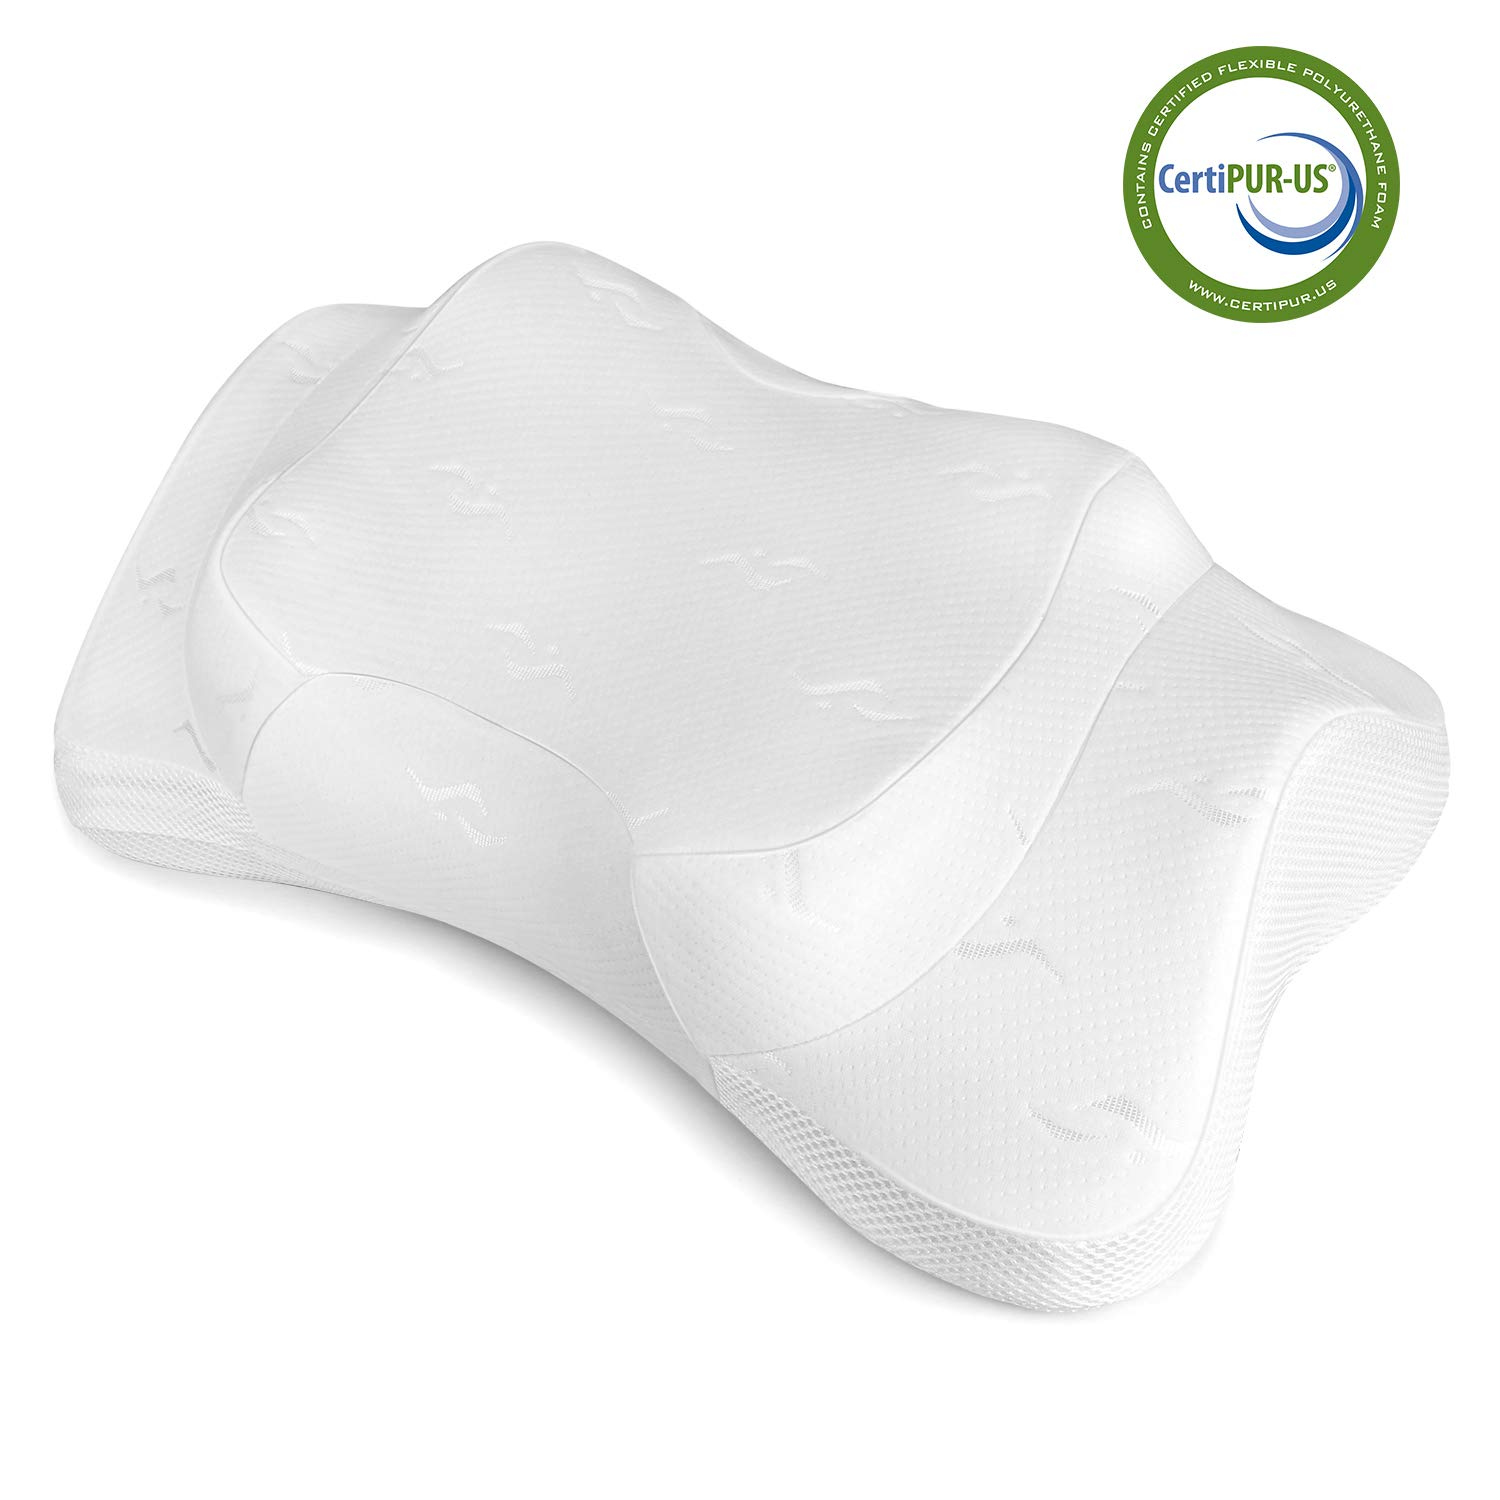 Memory Foam Pillow - Memory Foam Orthopedic Pillow for Sleeping, Cervical Pillow, Ergonomic Bed Pillow for Side Sleepers Back Sleepers, Neck Support Pillow with Hypoallergenic Pillowcase